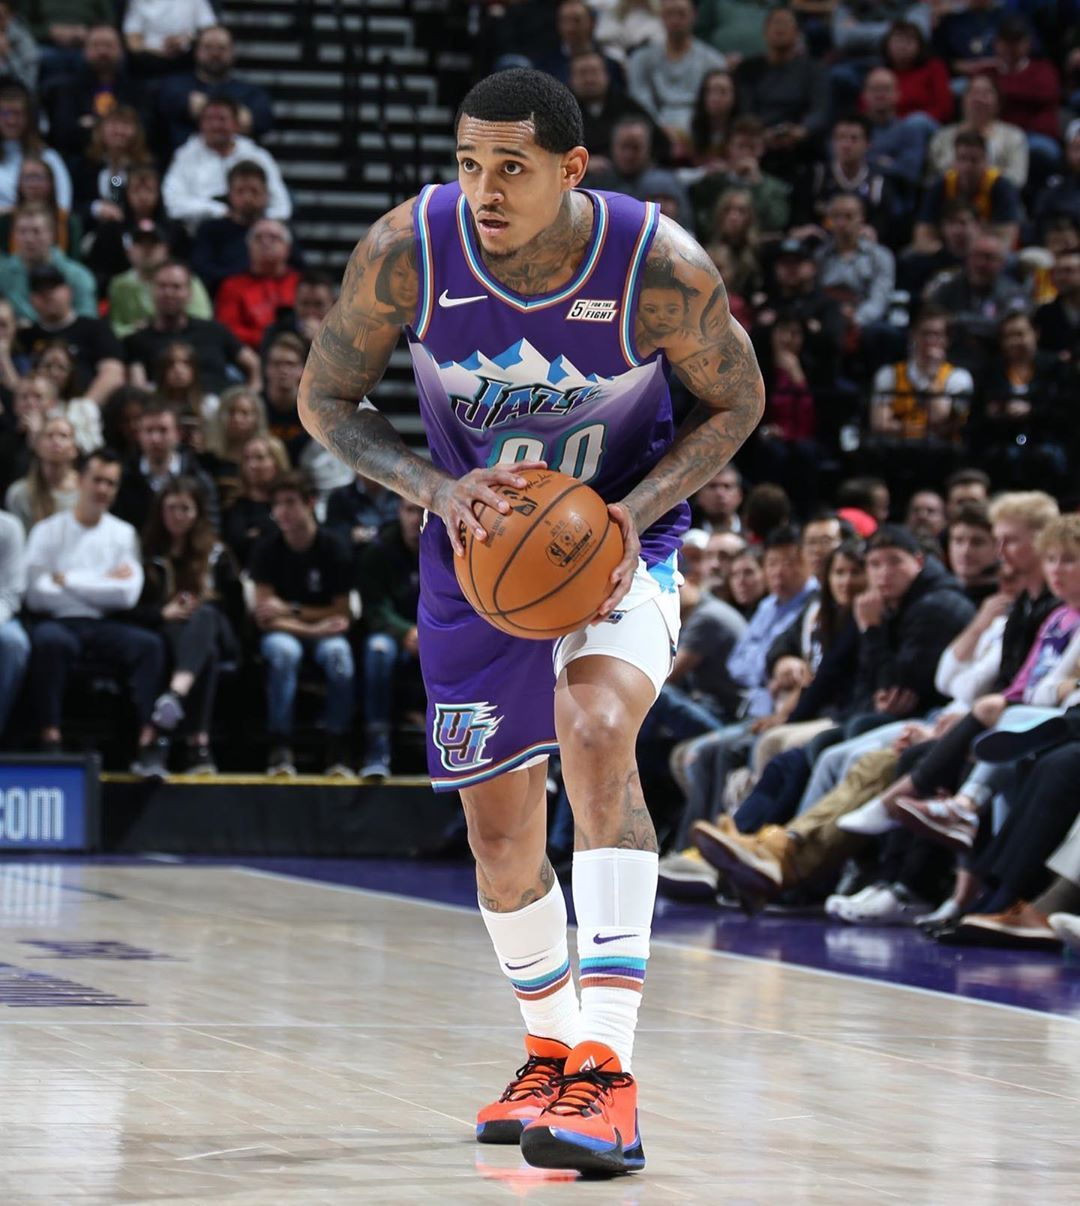 Kicks On Court On Instagram Nike Zoom Freak 1 Pe Jordanclarksons Kicksoncourt In 2020 Jordan Clarkson Utah Jazz Jazz Basketball